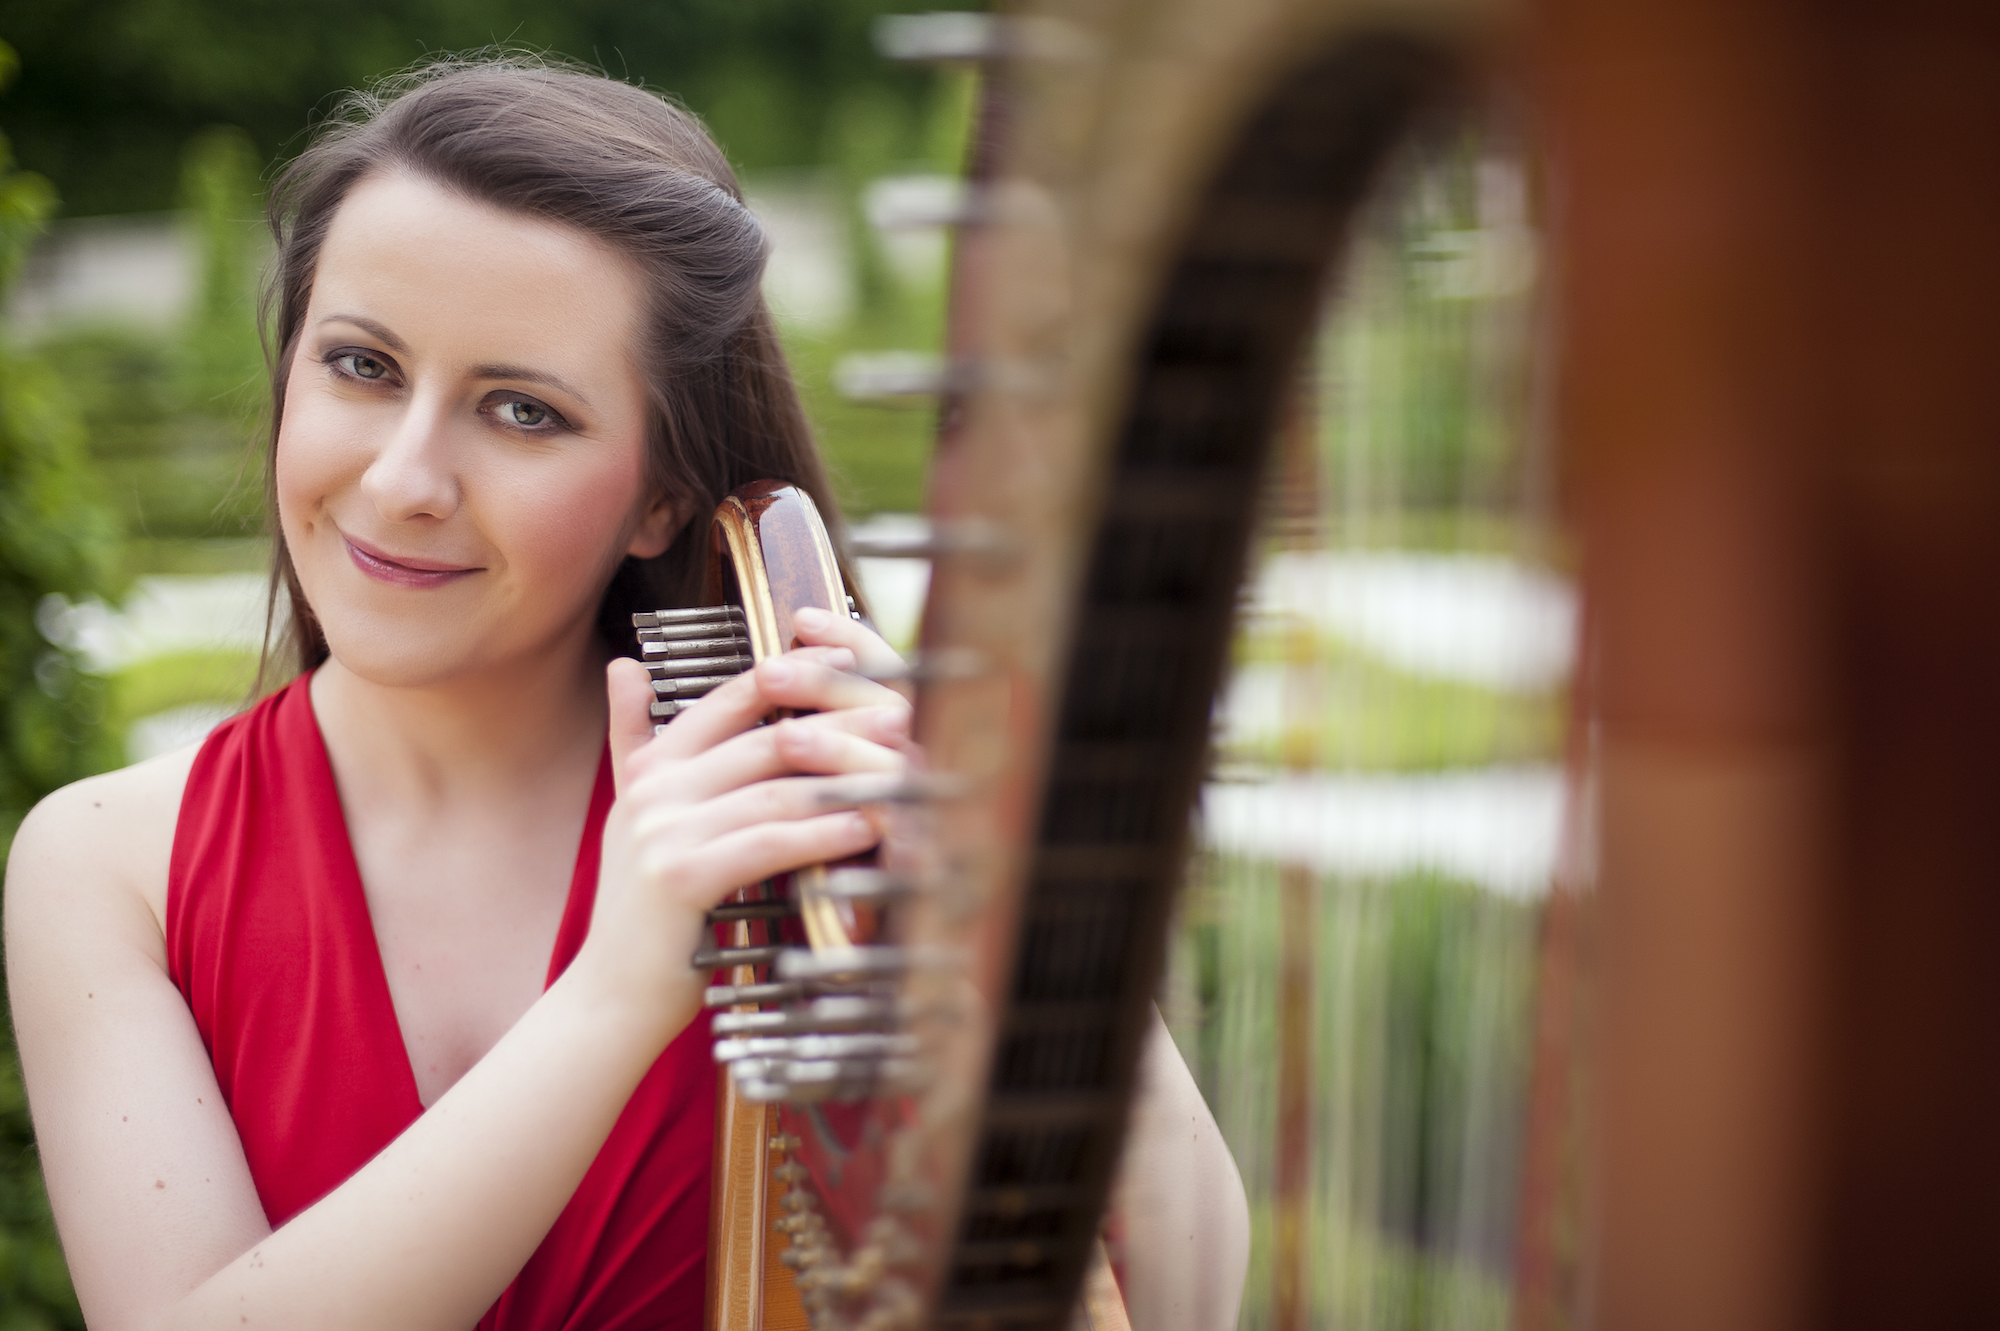 Zuzanna with the harp